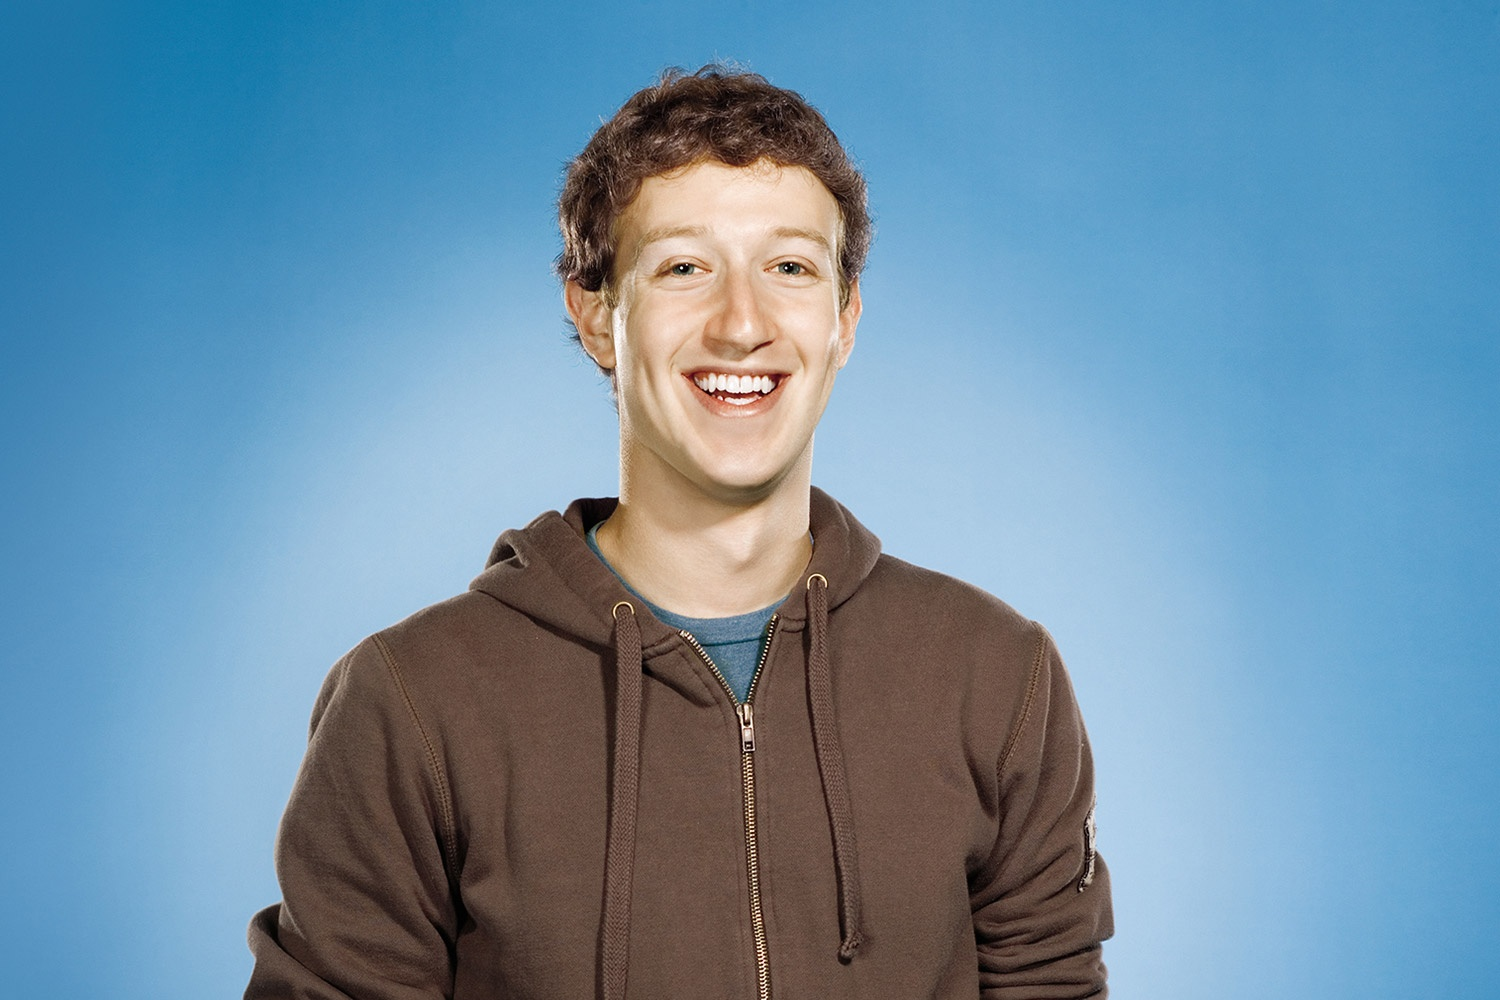 Facebook will have 5 billion users by 2030 predicts Mark Zuckerberg